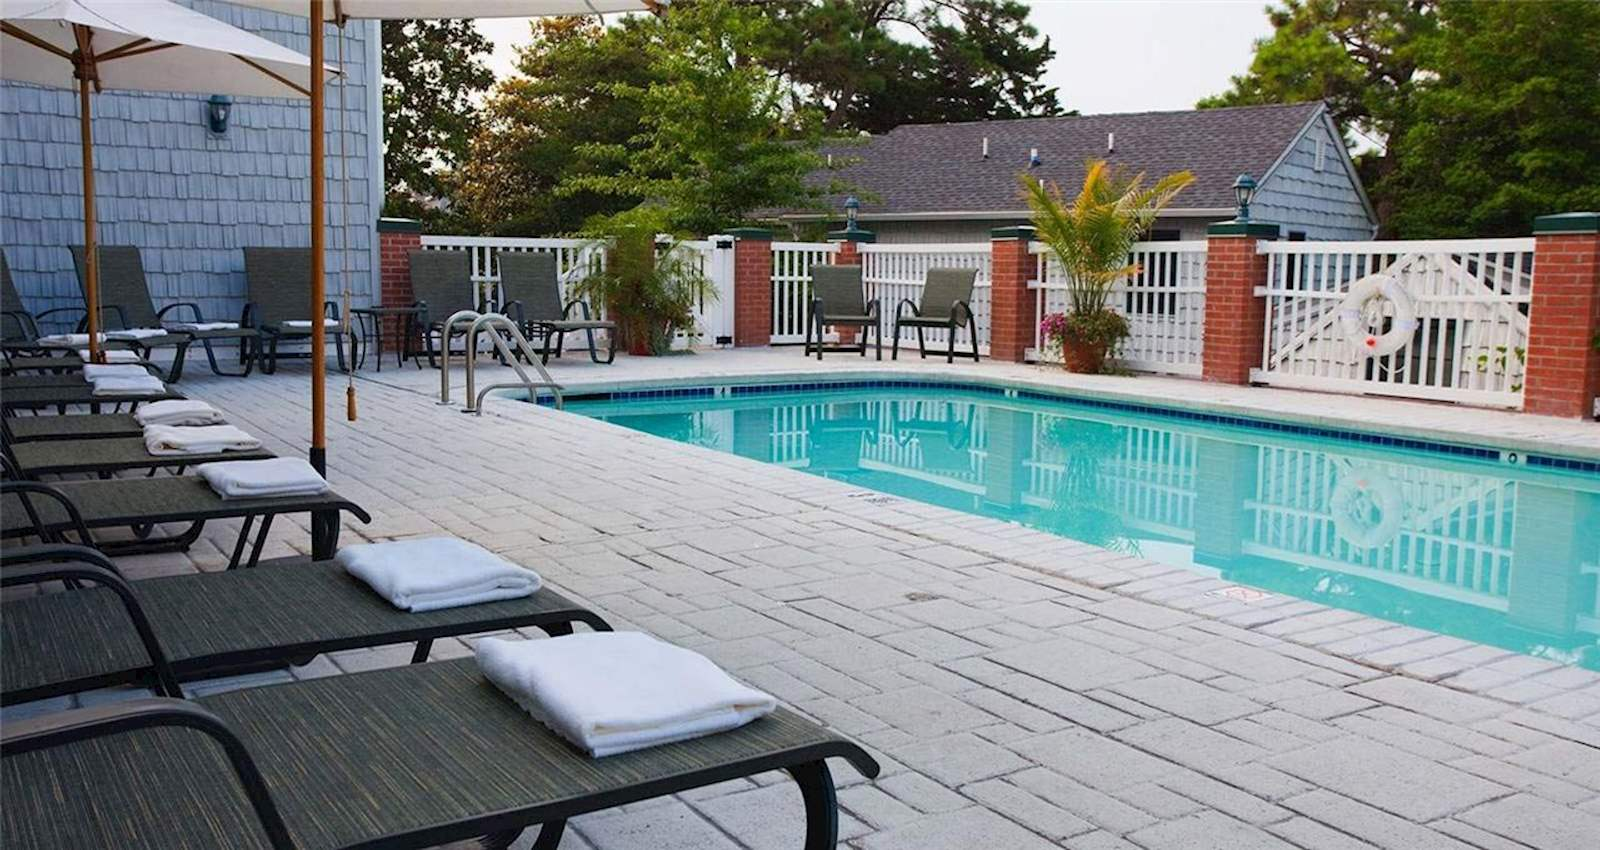 Hotel Rehoboth A Luxurious Rehoboth Beach De Hotel The Bellmoor Inn And Spa